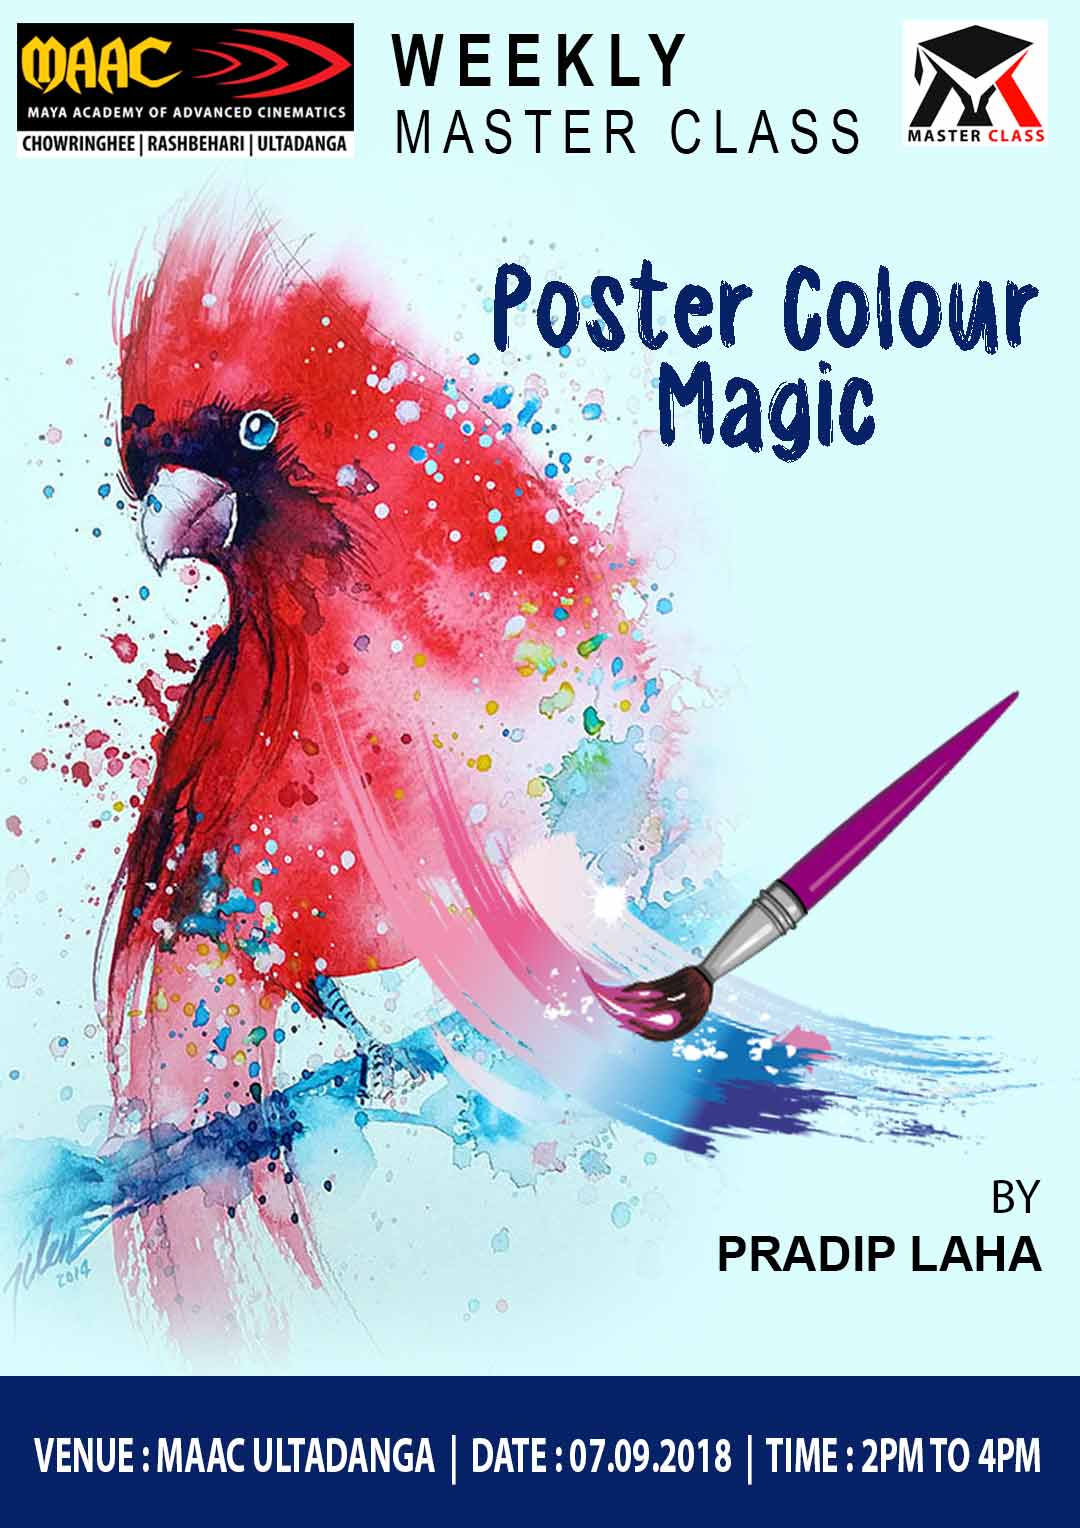 Weekly Master Class on Poster Colour Magic